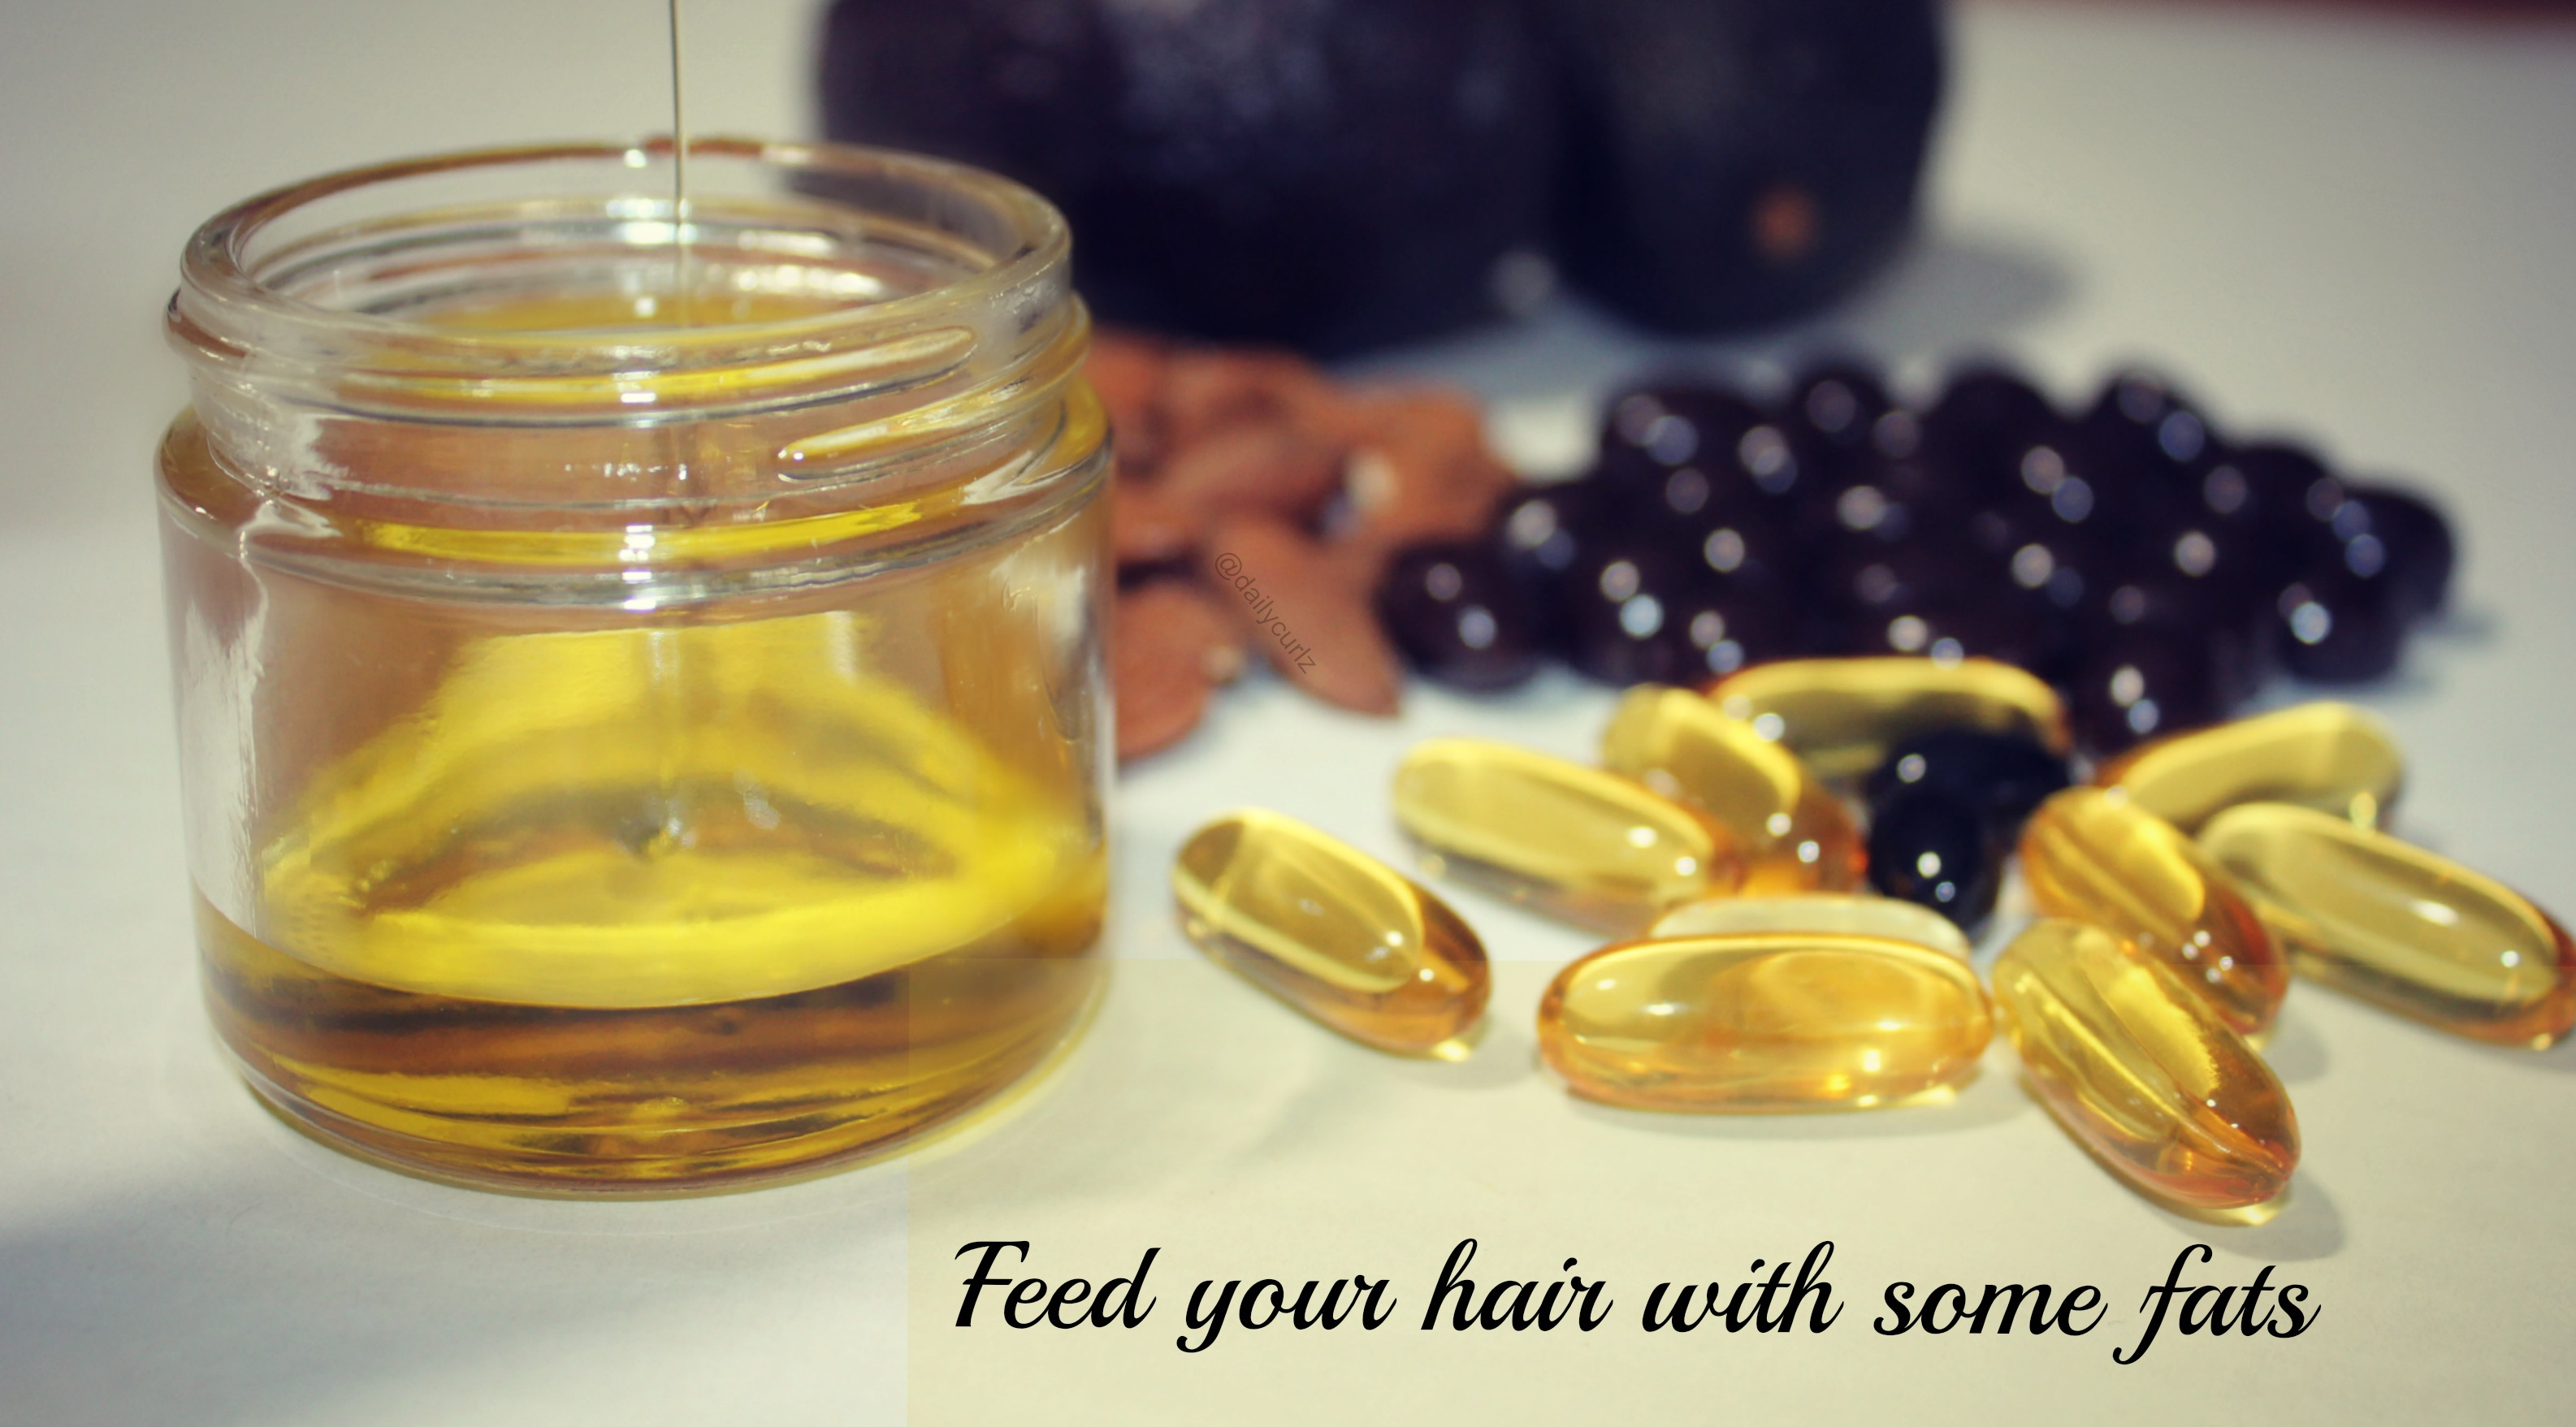 Feed your hair with some fats / Alimenta tu cabello con las mejores grasas